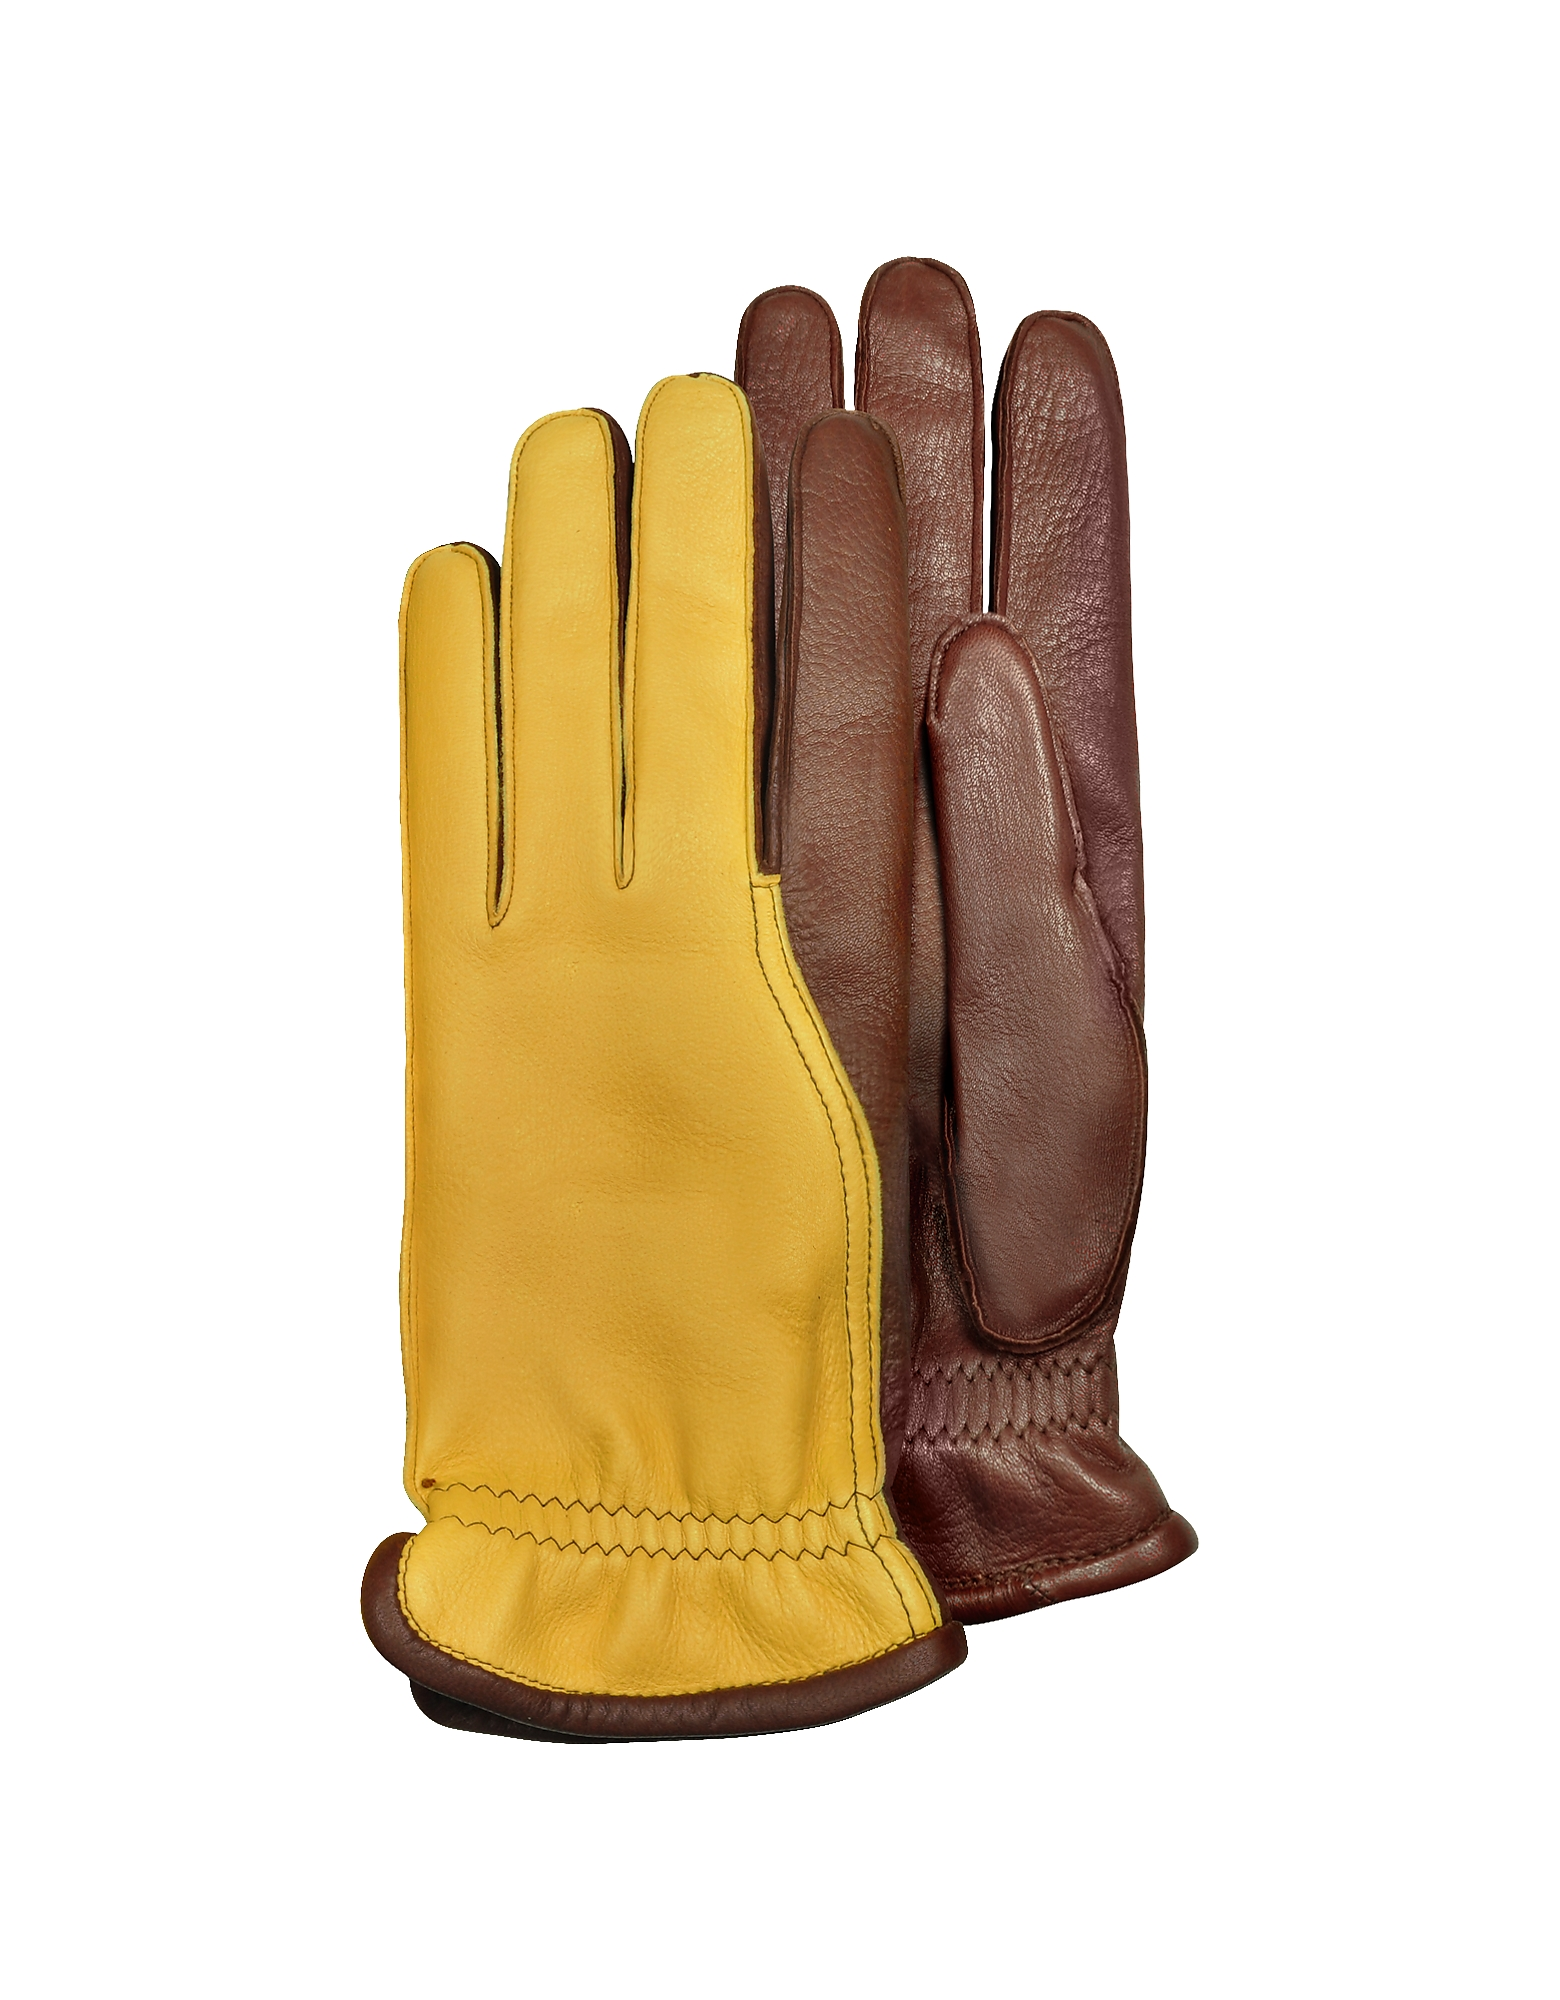 Men's Two-Tone Deerskin Leather Gloves w/ Cashmere Lining, Brown